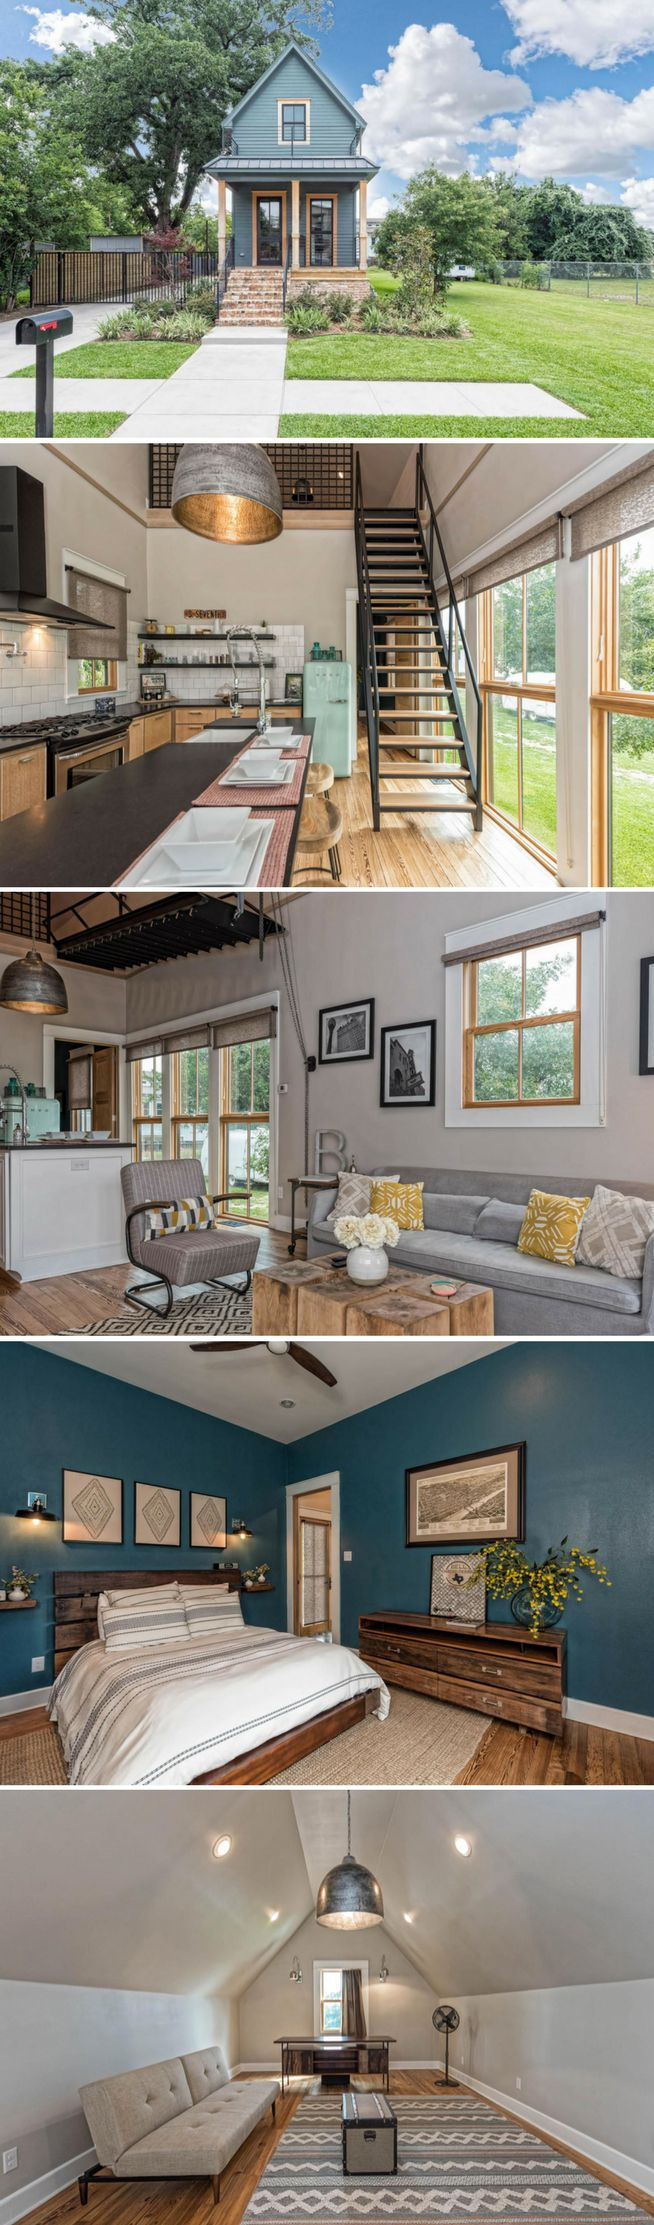 Pretty house.The smallest home featured on Fixer Upper: just 1,000 sq ft and now available for sale!